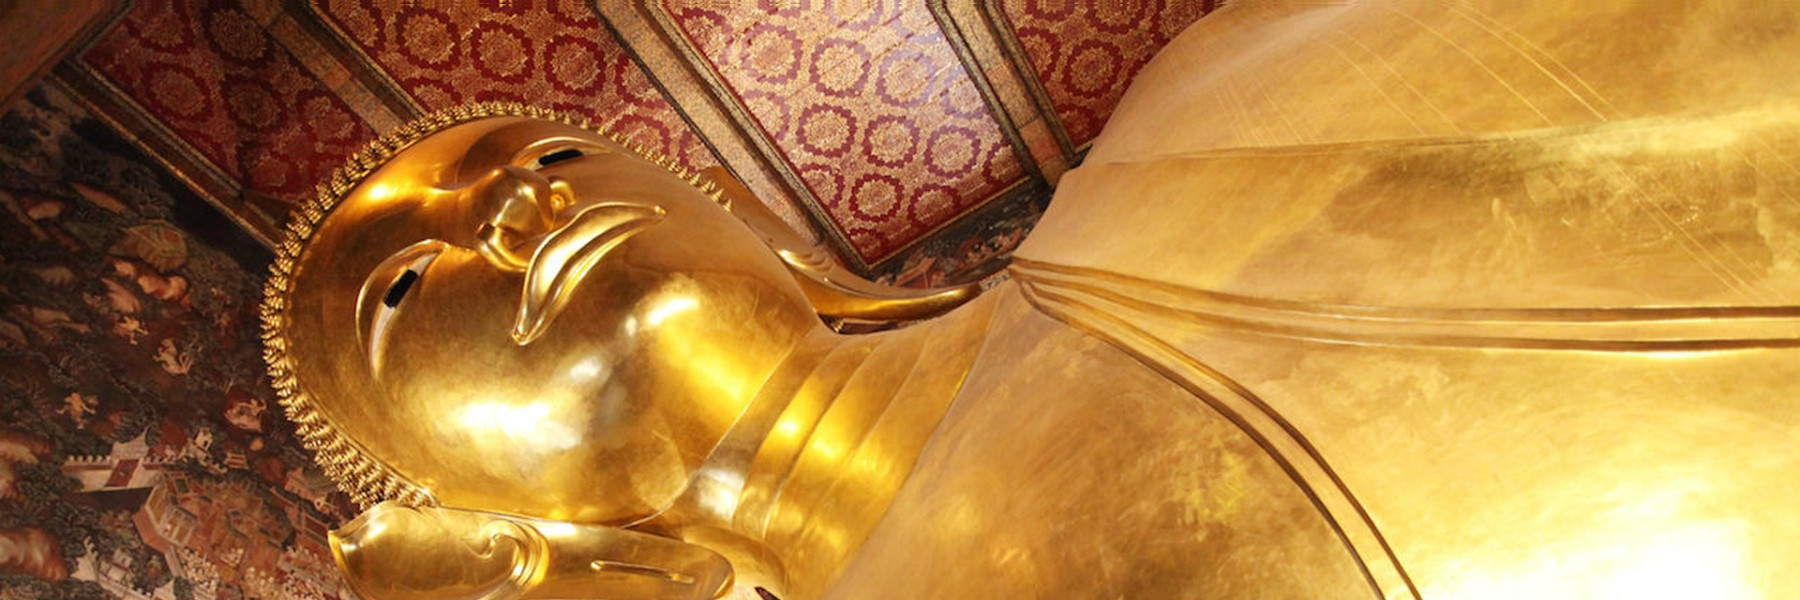 temple-of-the-reclining-buddha